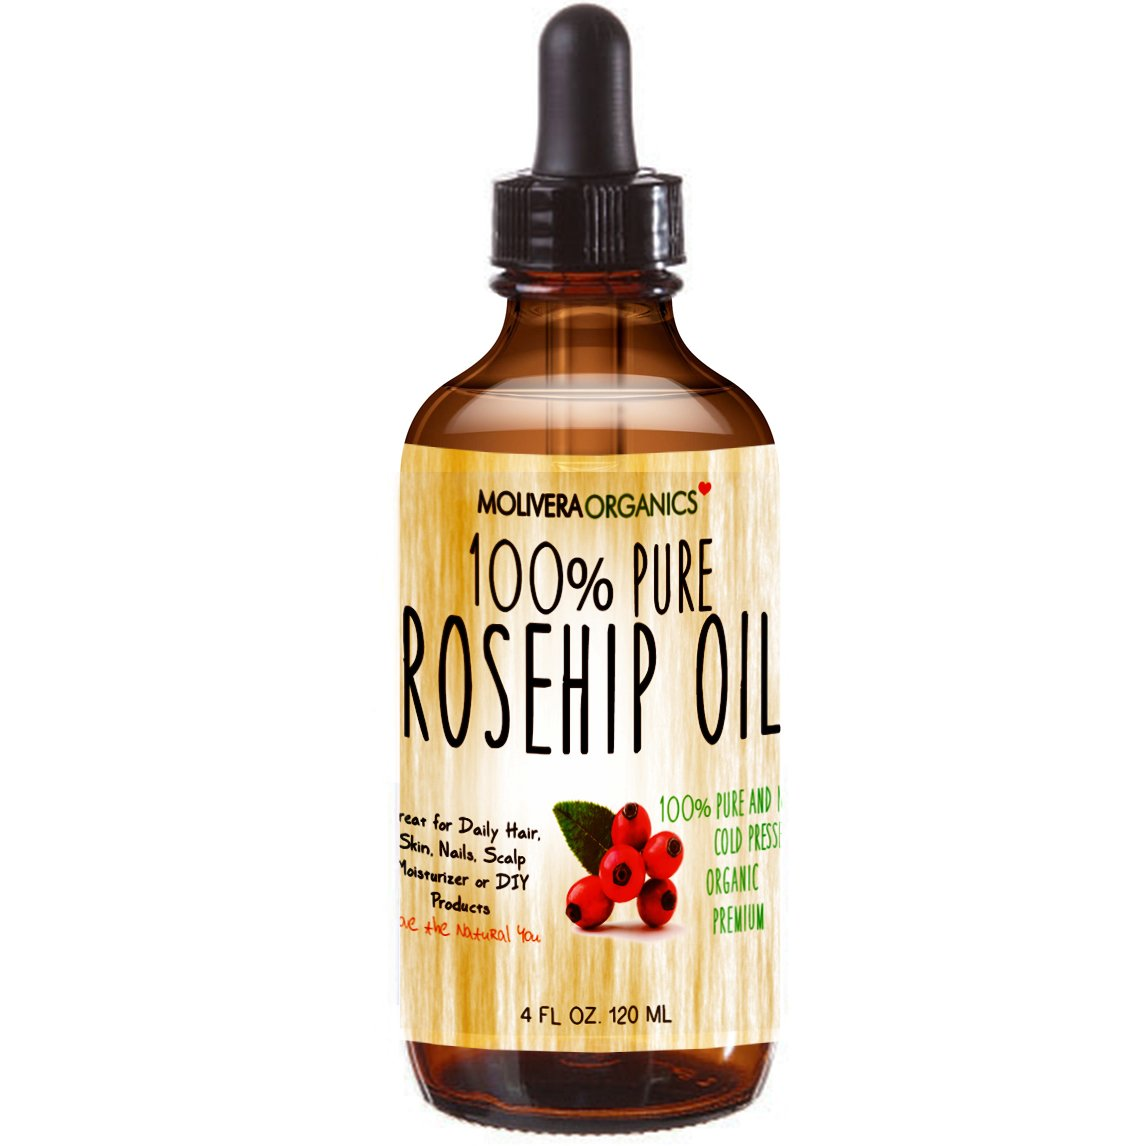 Molivera Organics Rosehip Oil 4 Fl Oz. 100% Pure Premium Organic Cold Pressed Virgin Rosehip Seed Oil -Best for Hair, Skin, Face & Nails – Great for DIY – UV Resistant Bottle